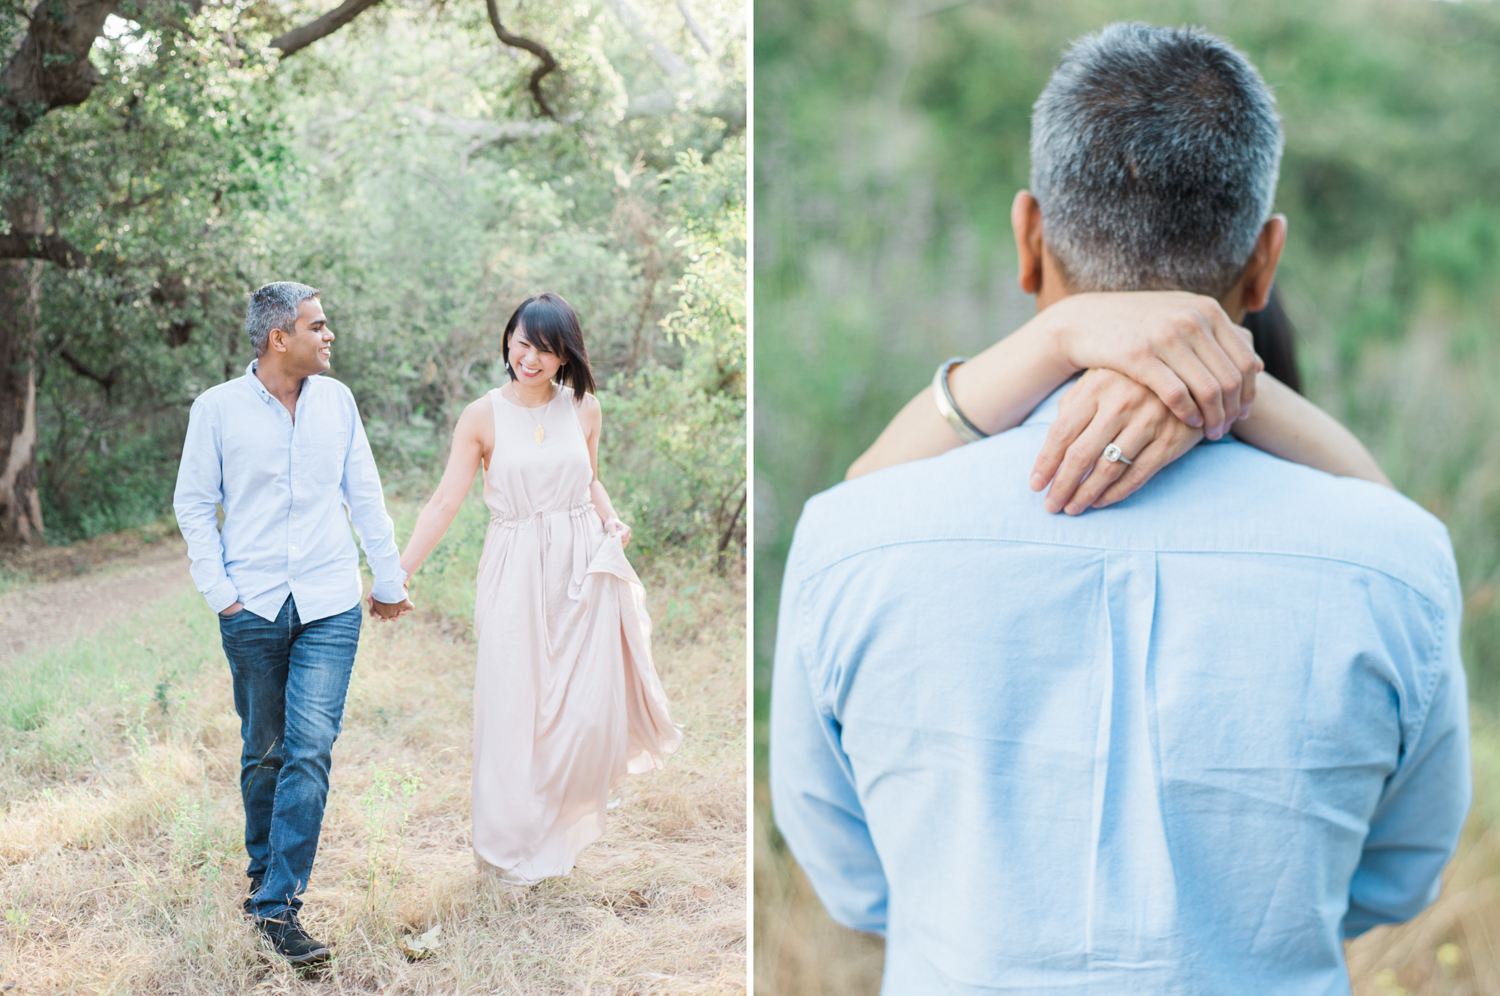 tina&sahil_solstice_canyon_engagement_session_photography_los_angeles_wedding_photographer-1.jpg